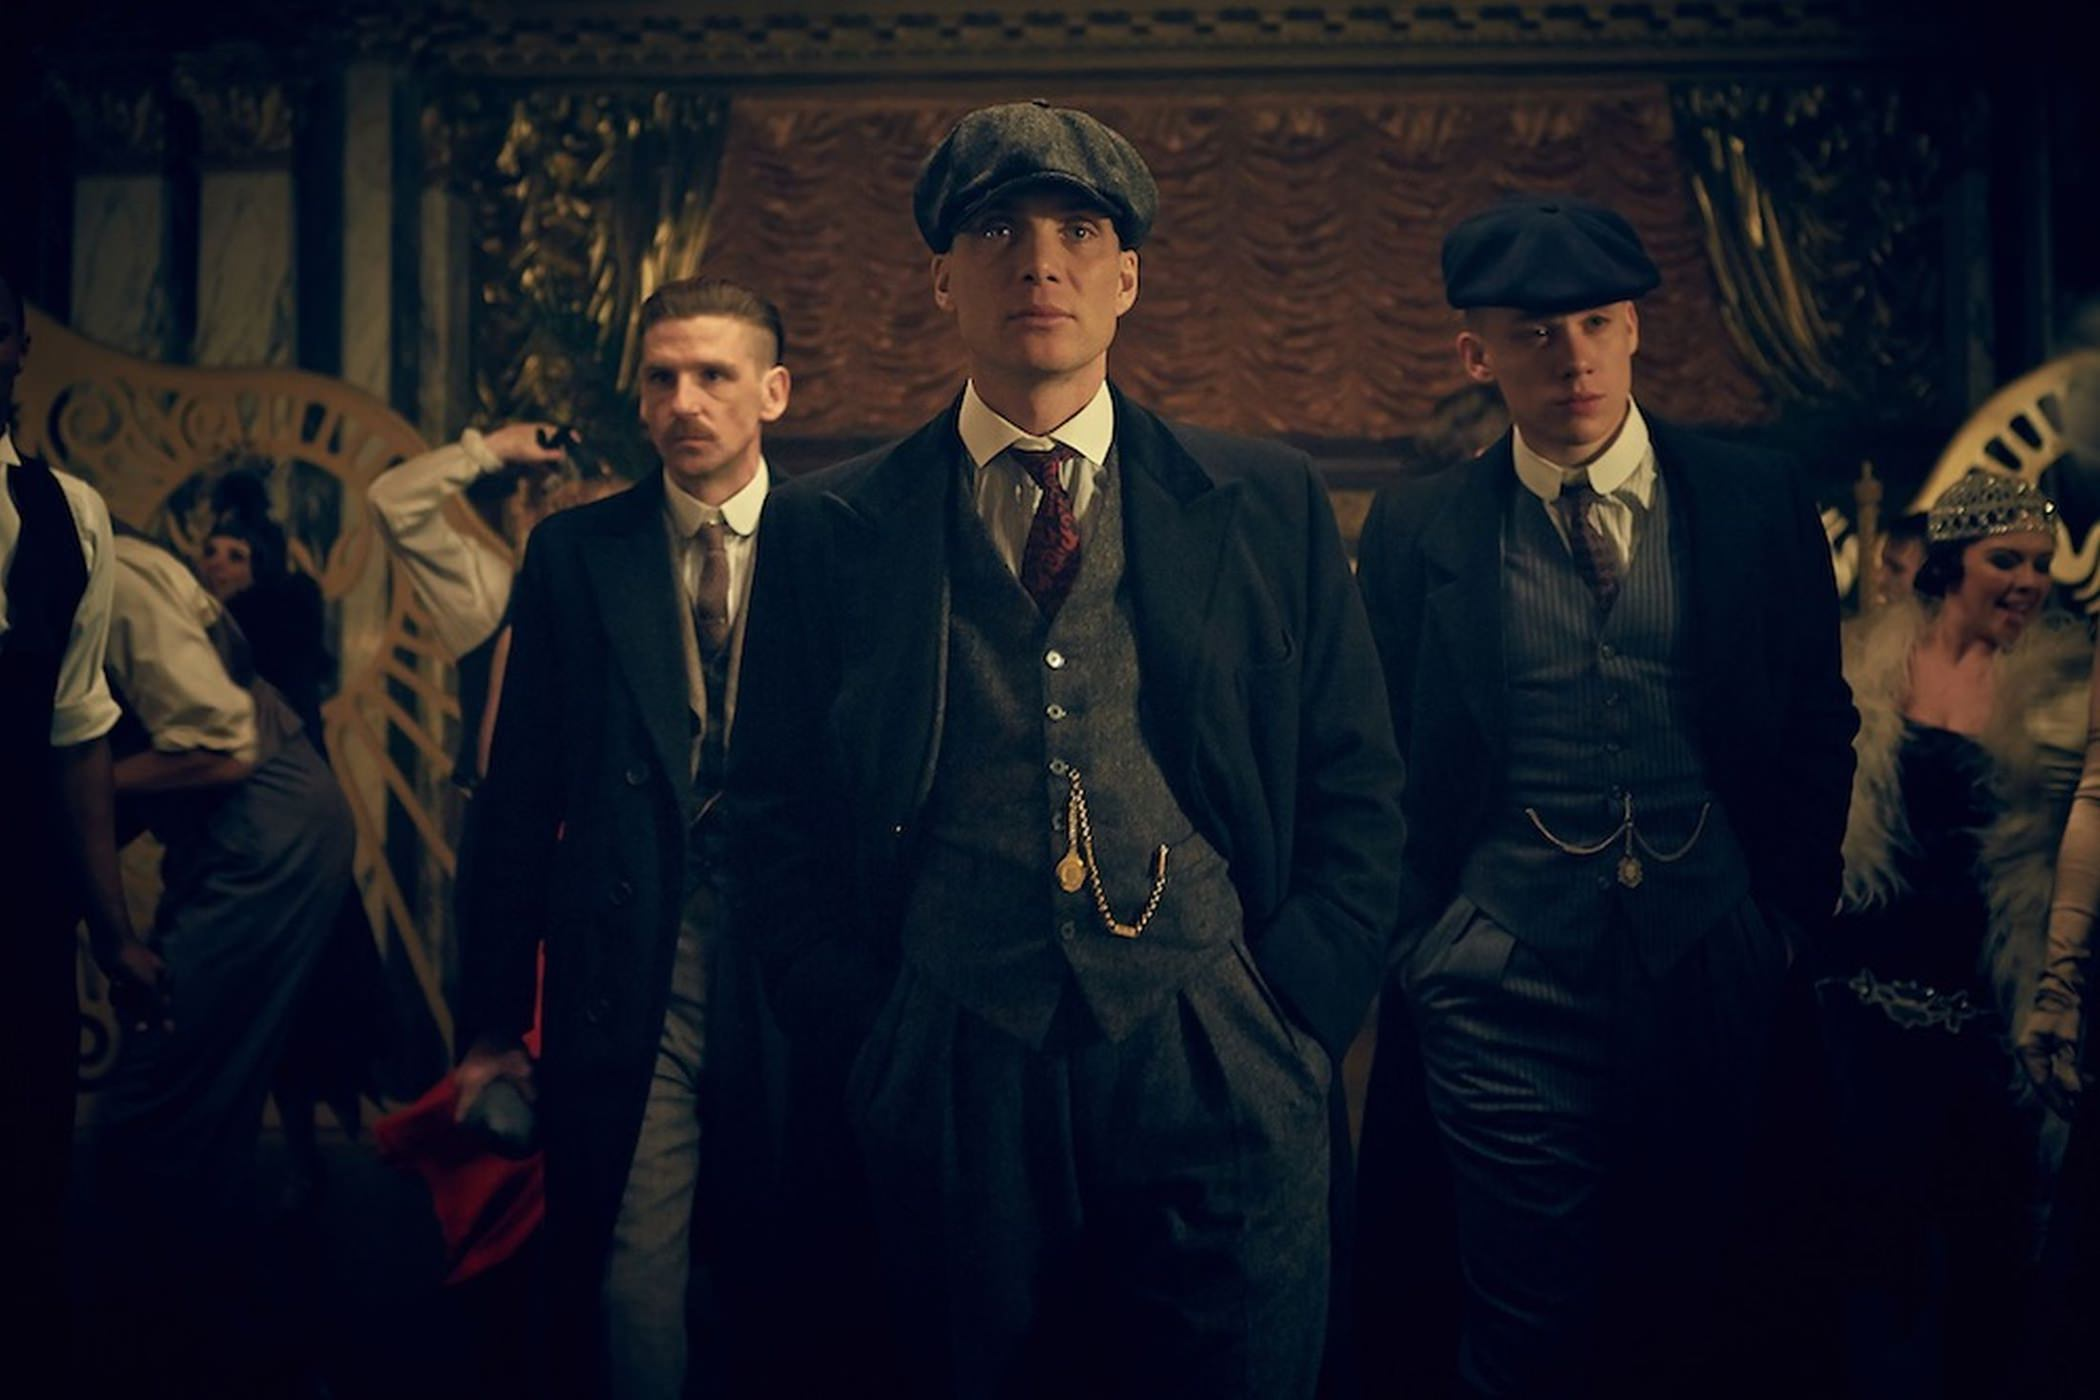 Peaky blinders knight bbc